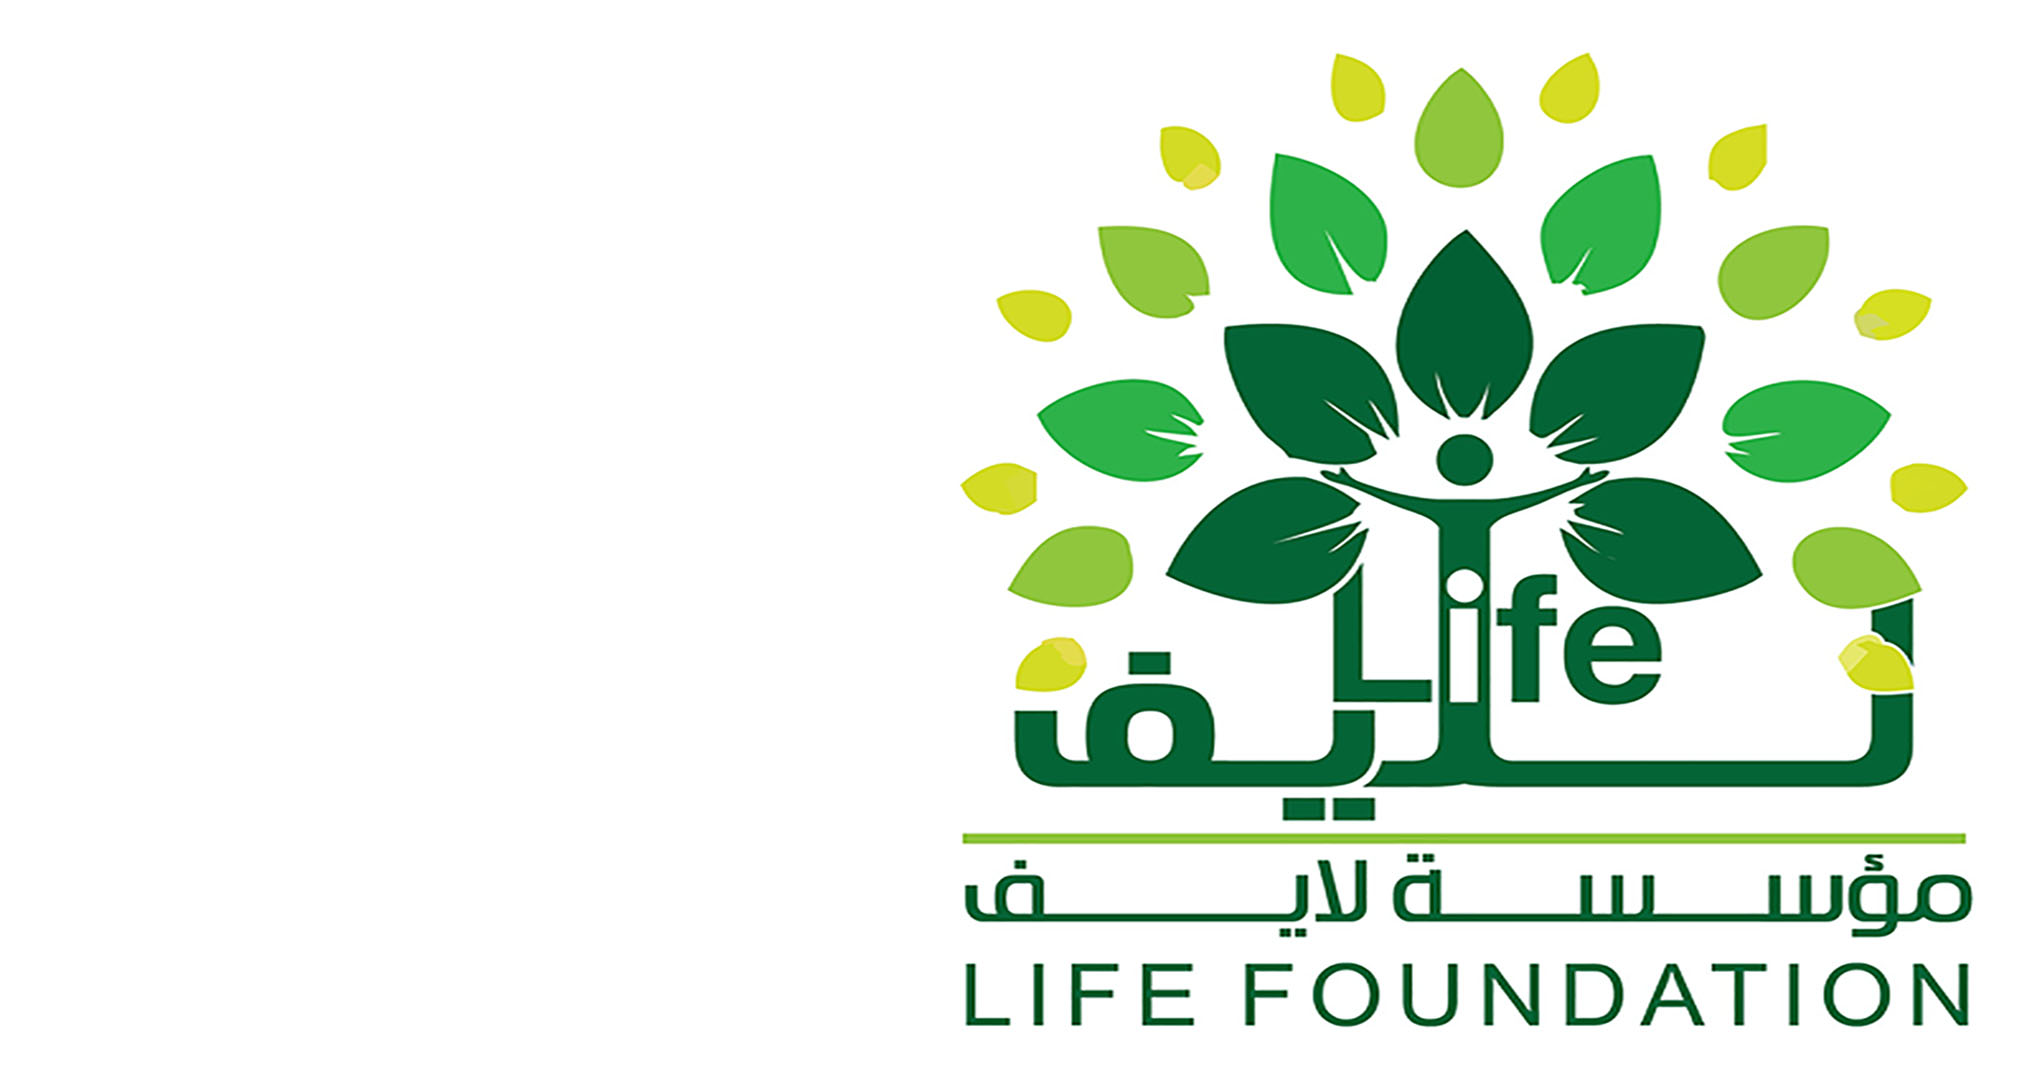 L.I.F.E Foundation